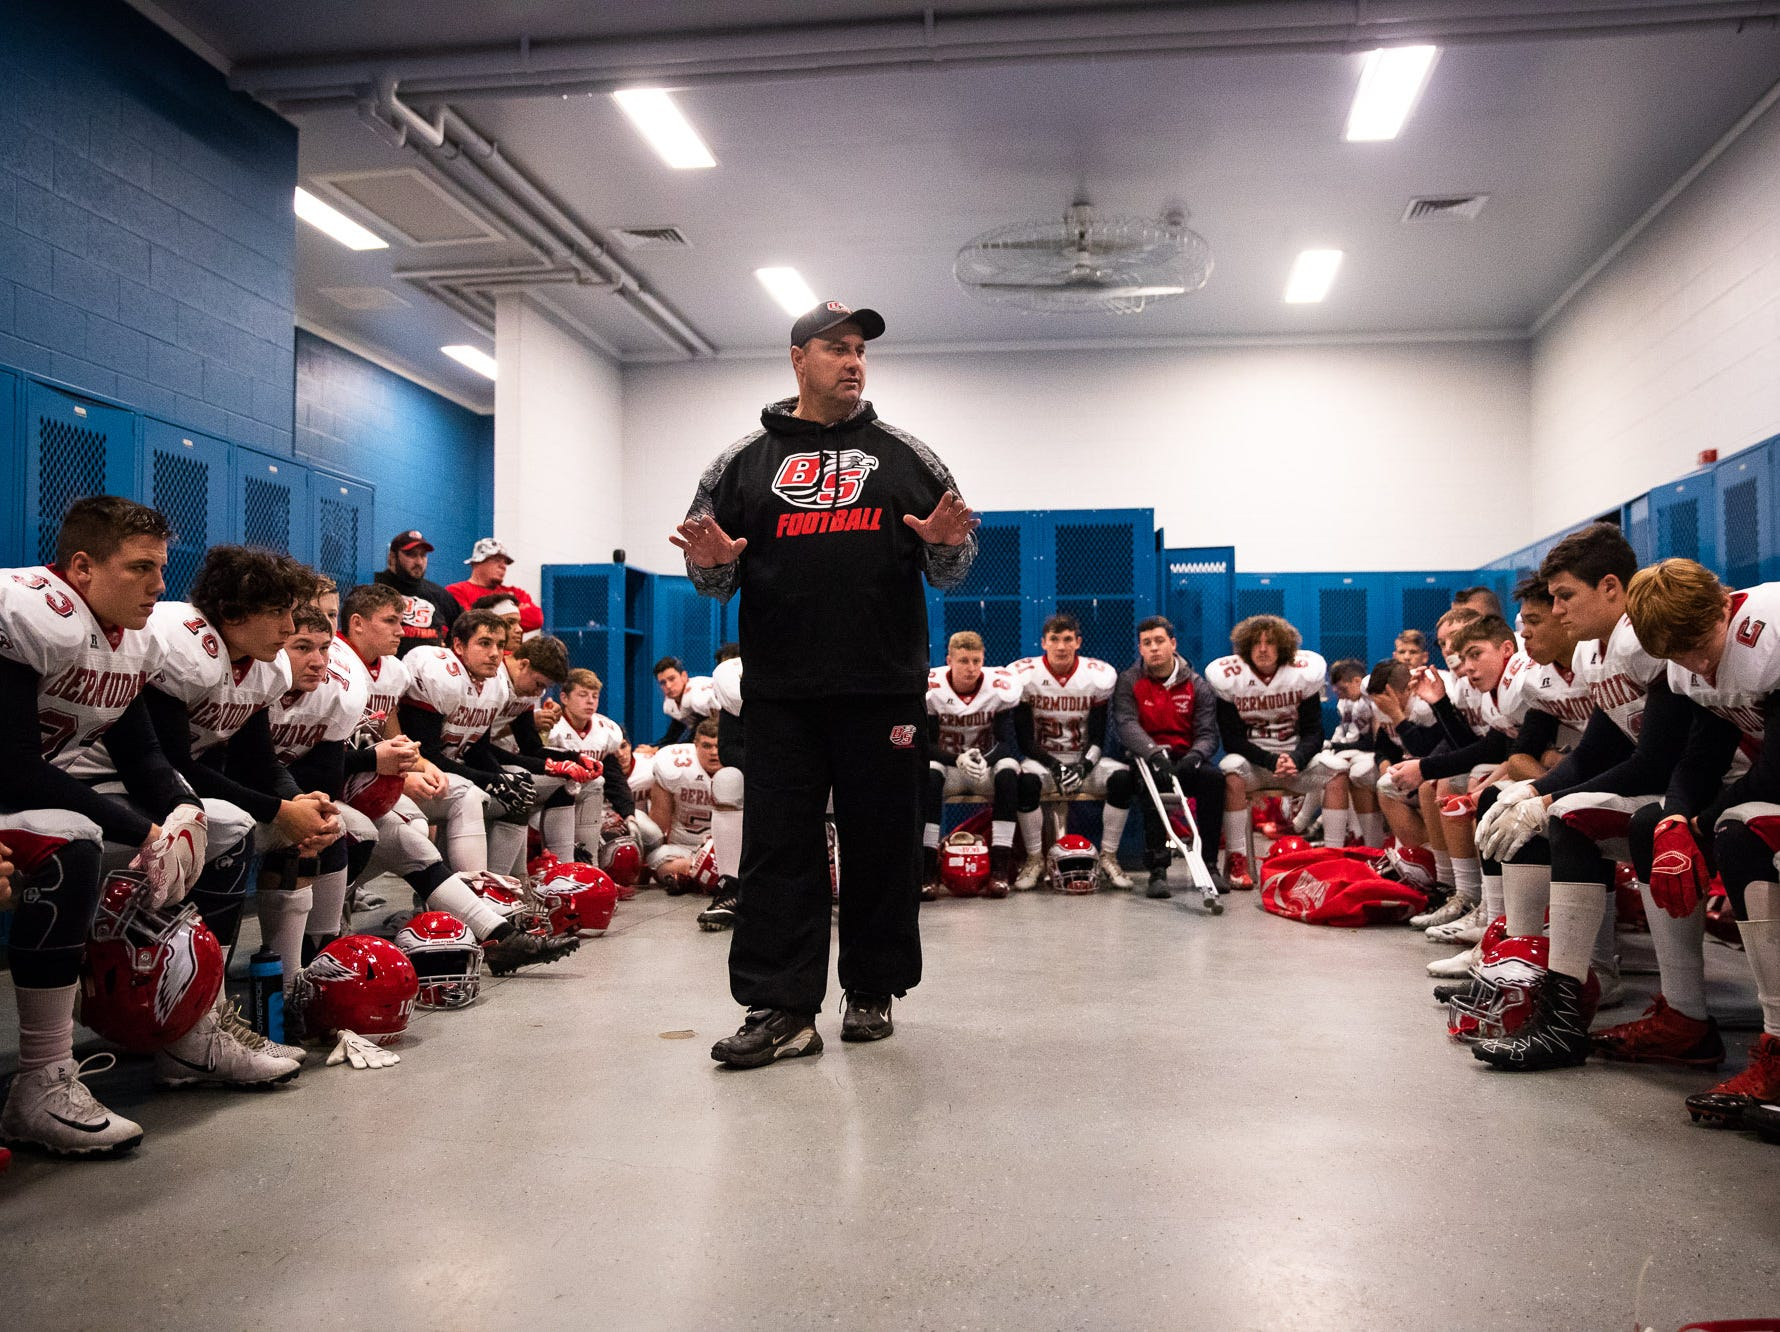 The Bermudian Springs Eagles listen to their head coach, Jon DeFoe, in the locker room before the first half of the District 3 Class 3A championship game between Bermudian Springs and Middletown, Saturday, Nov. 17, 2018, at Cedar Crest High School. Middletown leads Bermudian Springs 28-6 at the half.